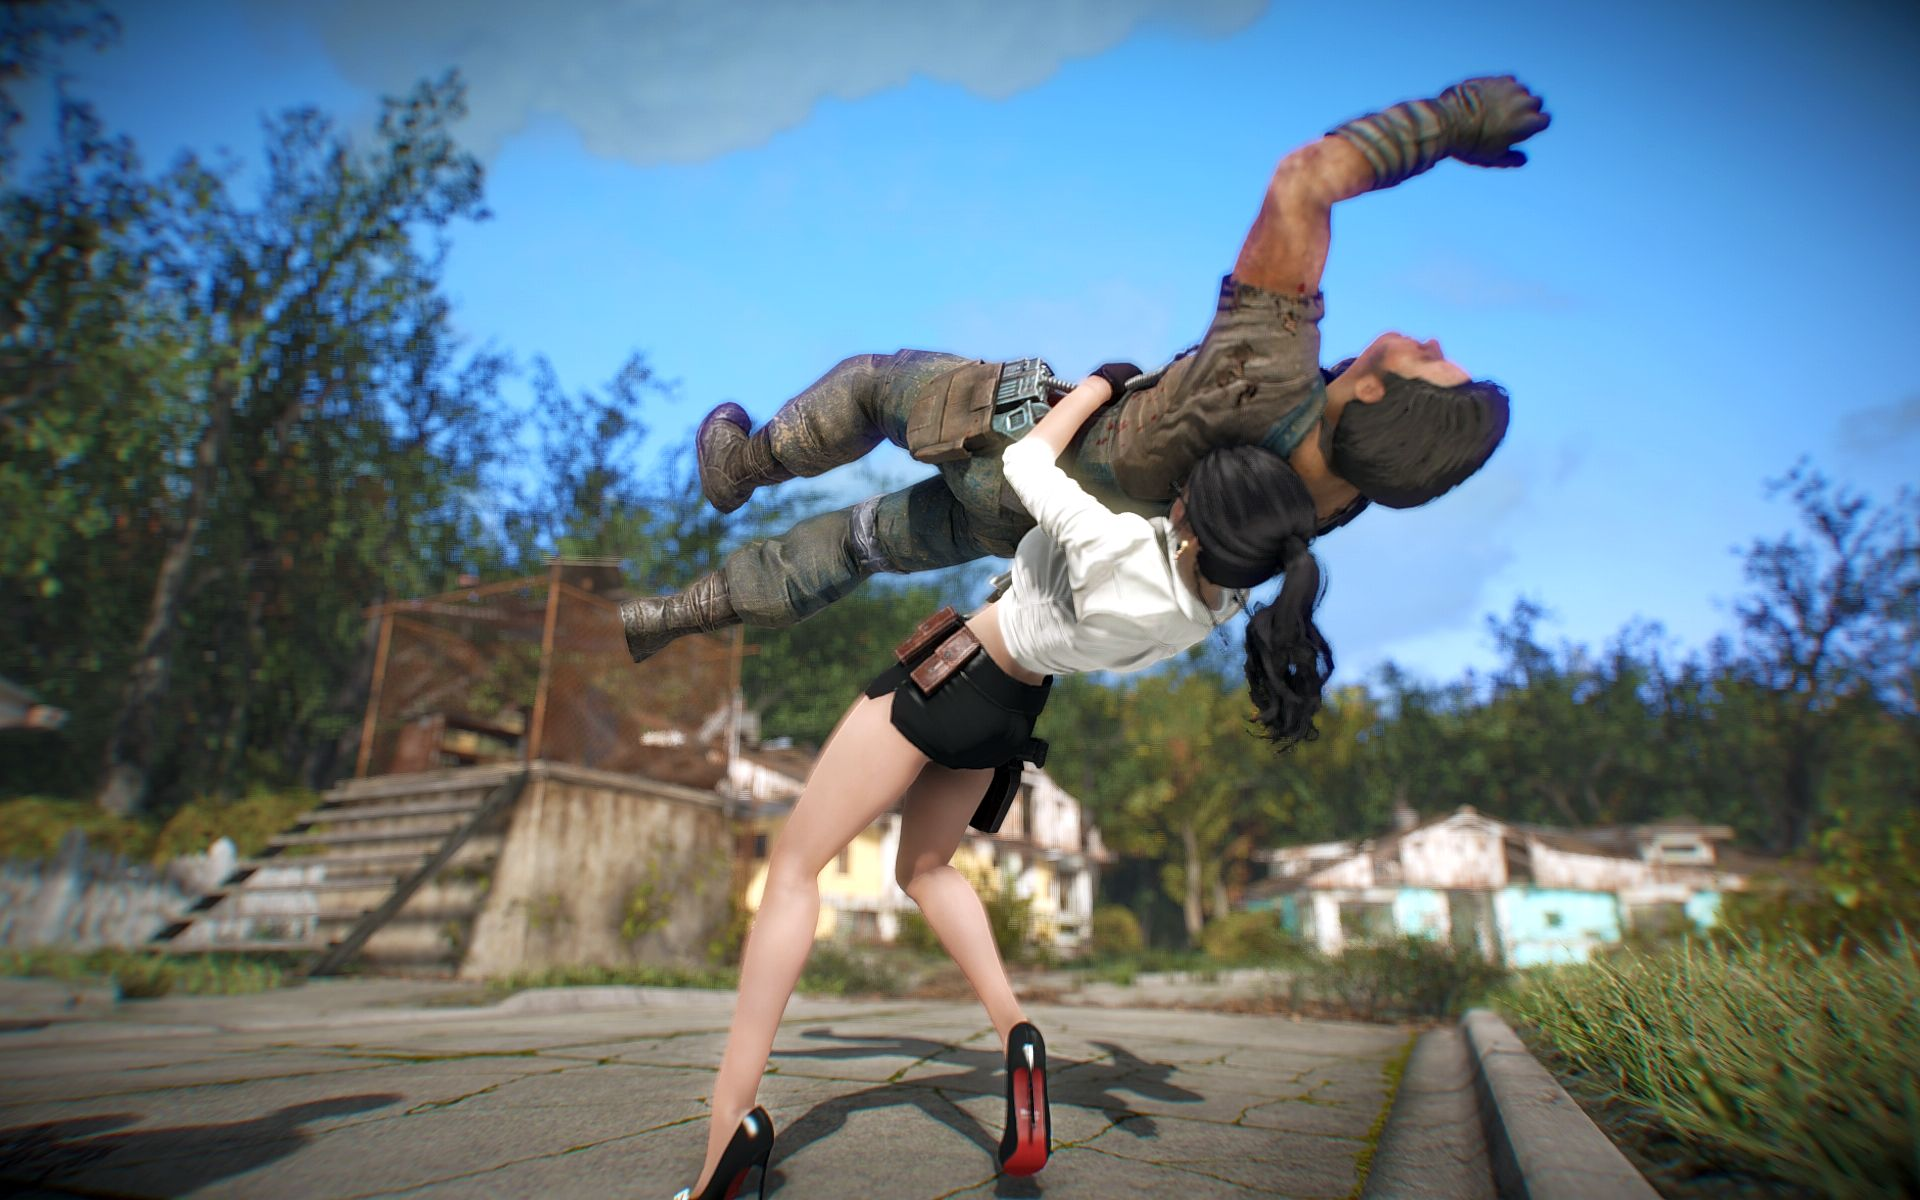 You can suplex dudes in Fallout 4 now